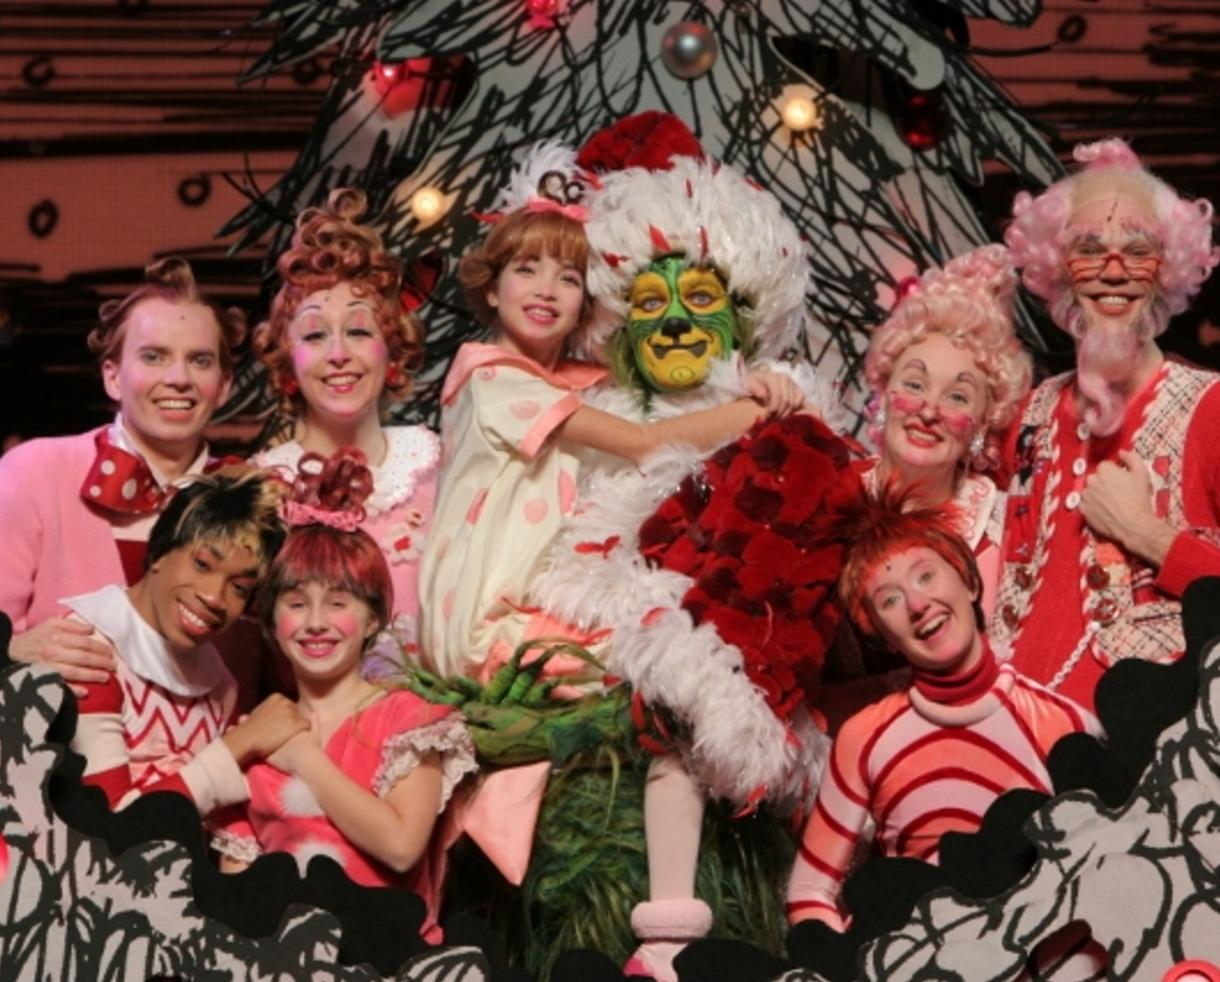 25 for dr seuss how the grinch stole christmas the musical at the chicago theatre from nov 20 29 up to 31 off - Christmas Shows In Chicago